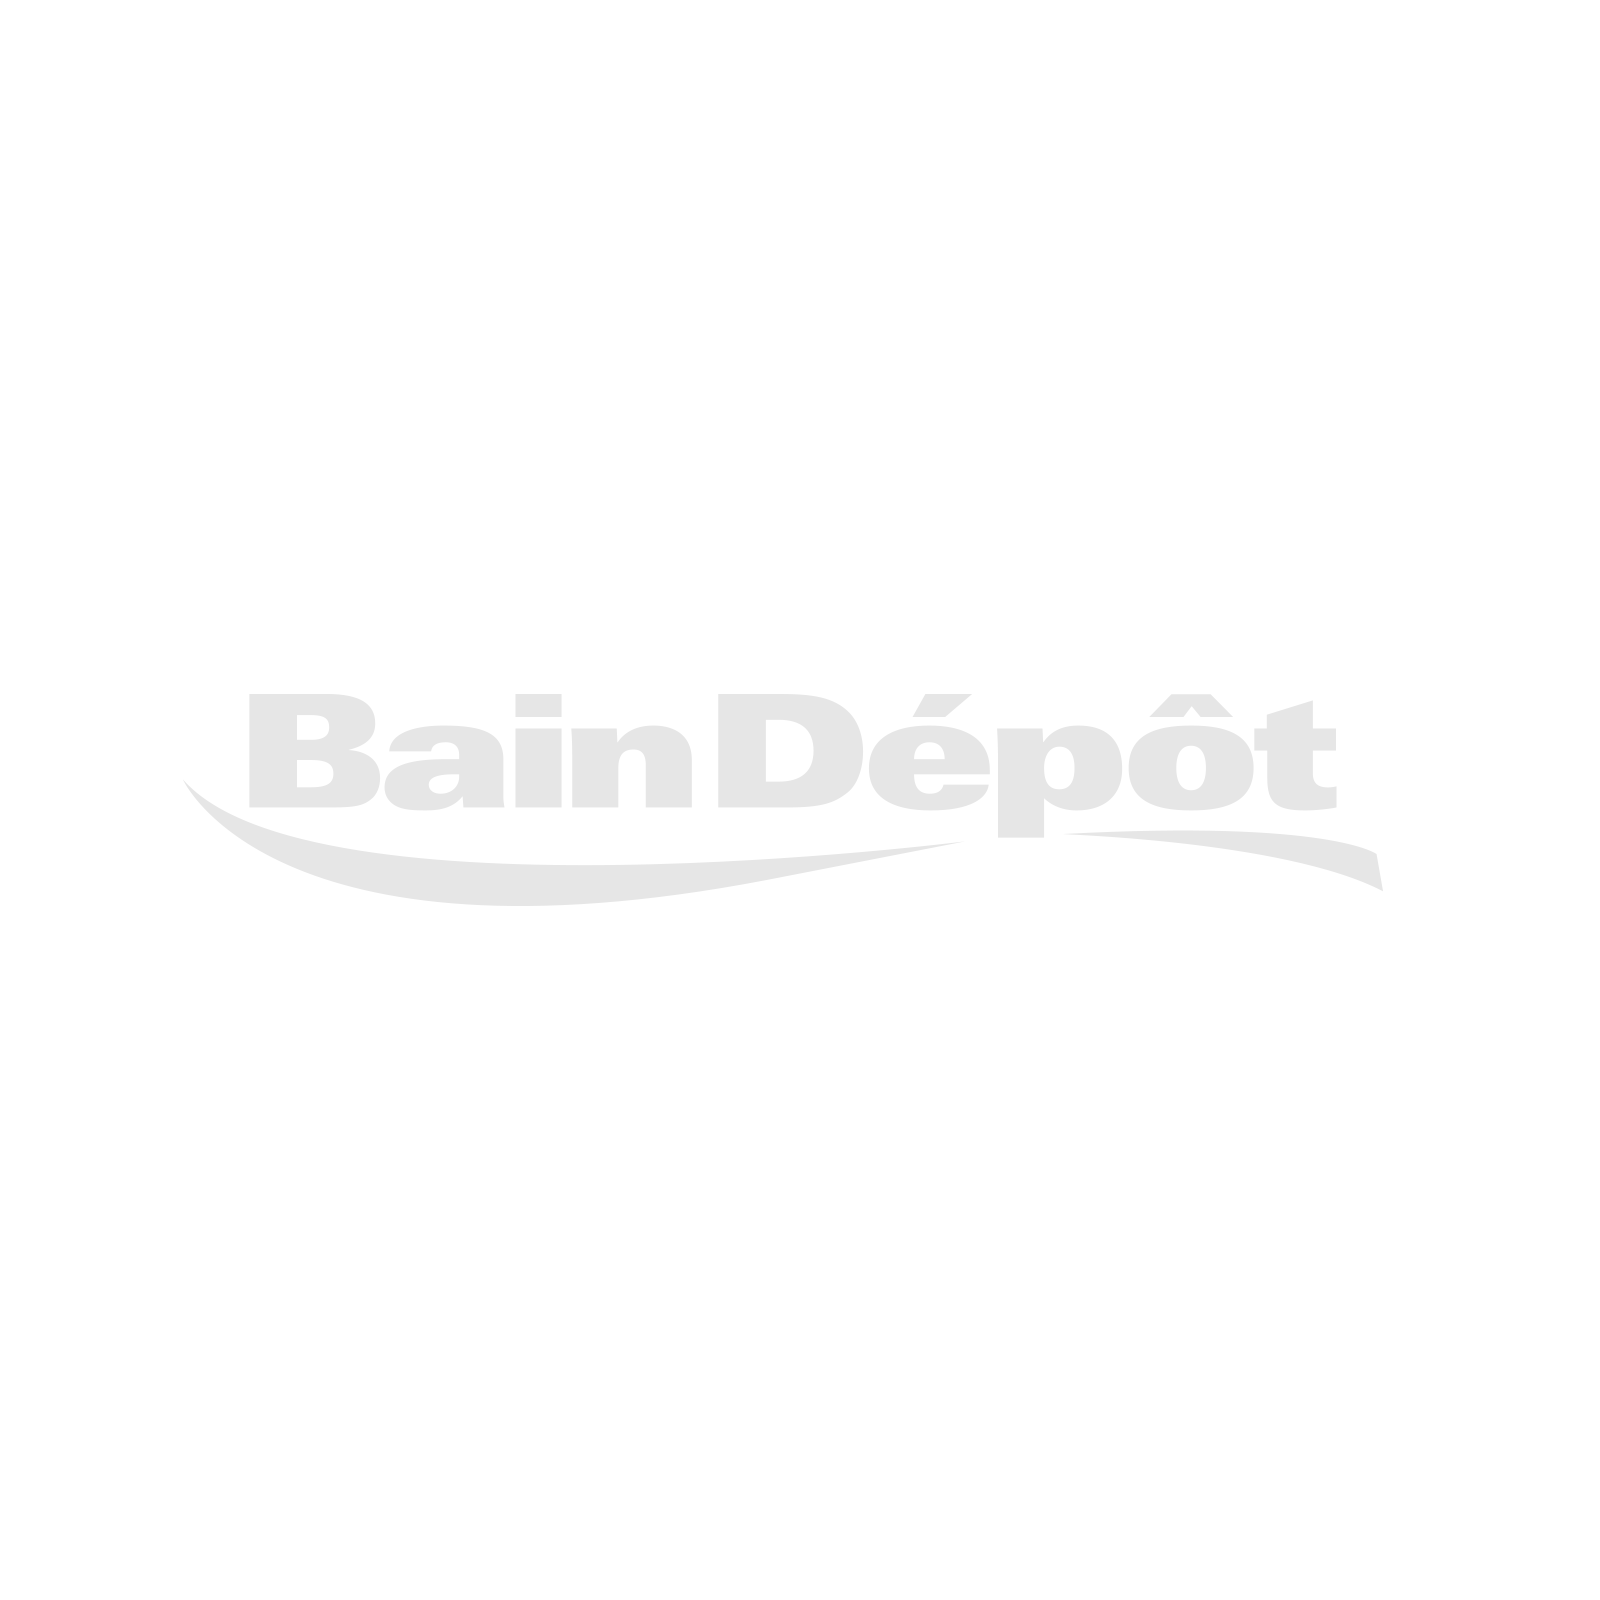 Tension rod kitchen organizer with hooks, utensil holder and 2 suspended baskets